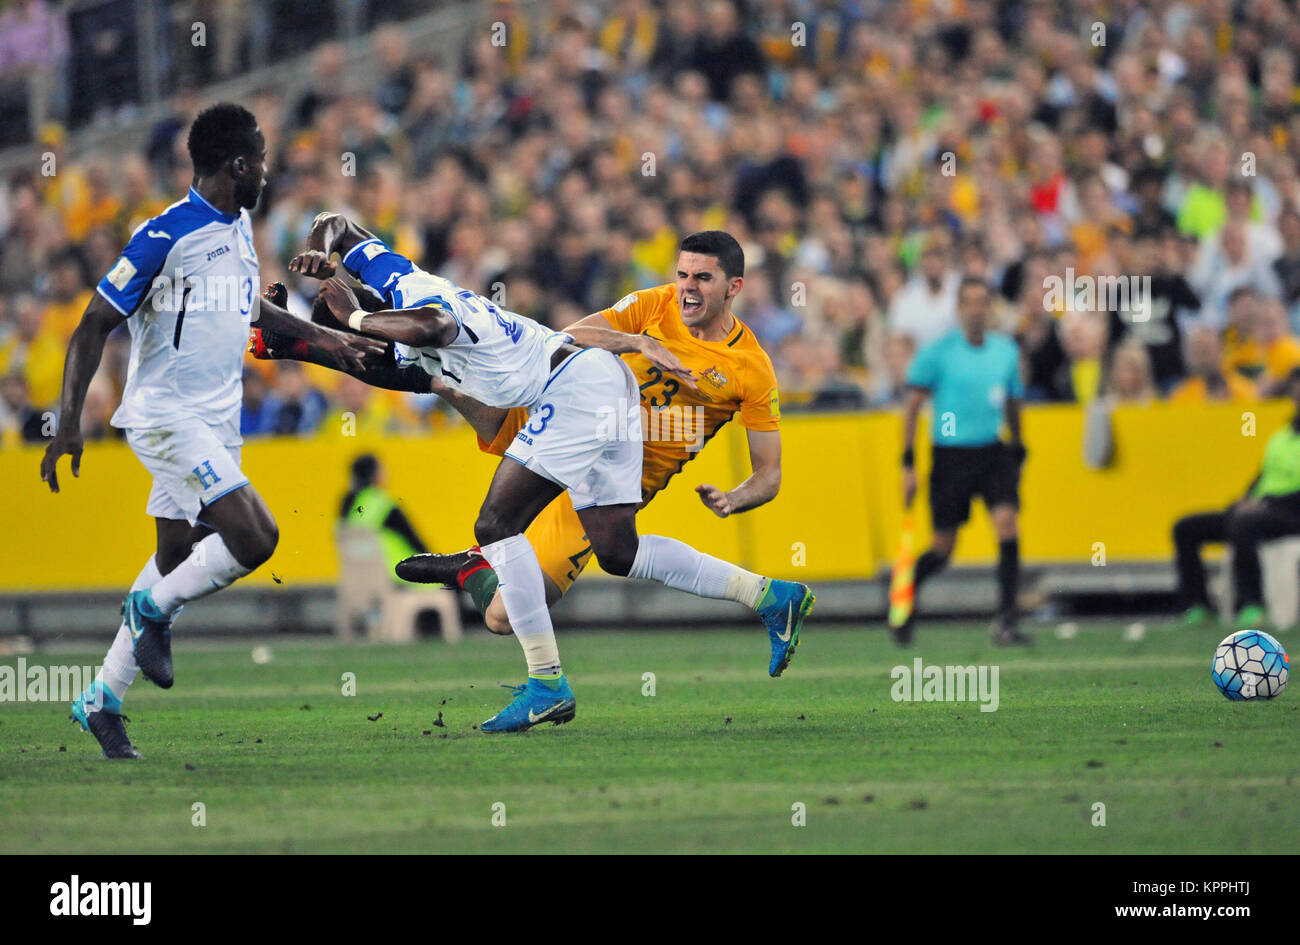 Australia defeated Honduras 3-1 to win the World Cup Intercontinental Playoff and qualify for the World Cup finals - Stock Image